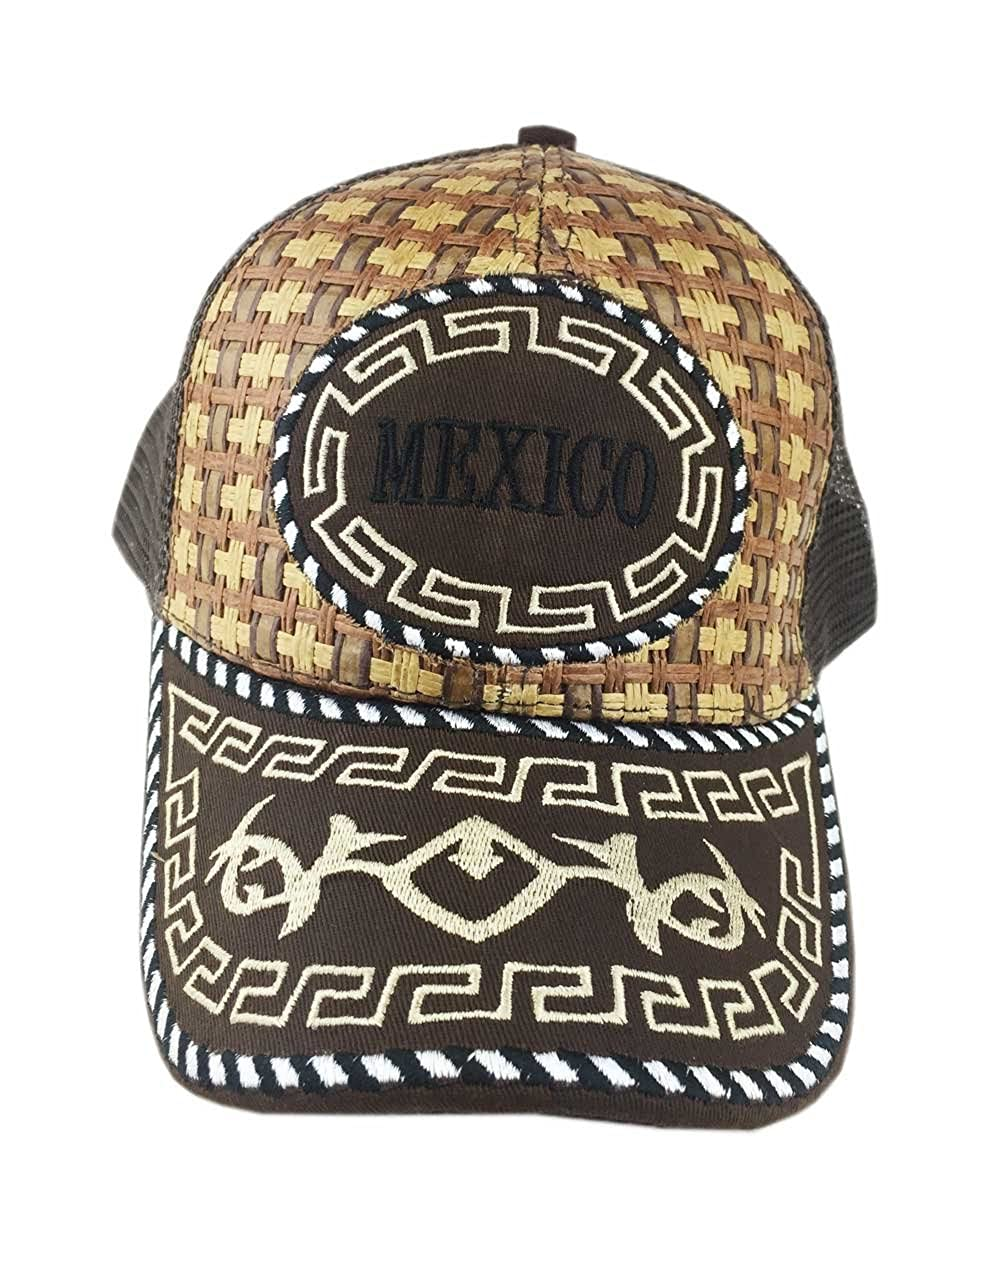 Aesthetinc Western Wear Chara Mexico Straw Trucker Hat Cap (Brown) at  Amazon Men s Clothing store  73be505f710